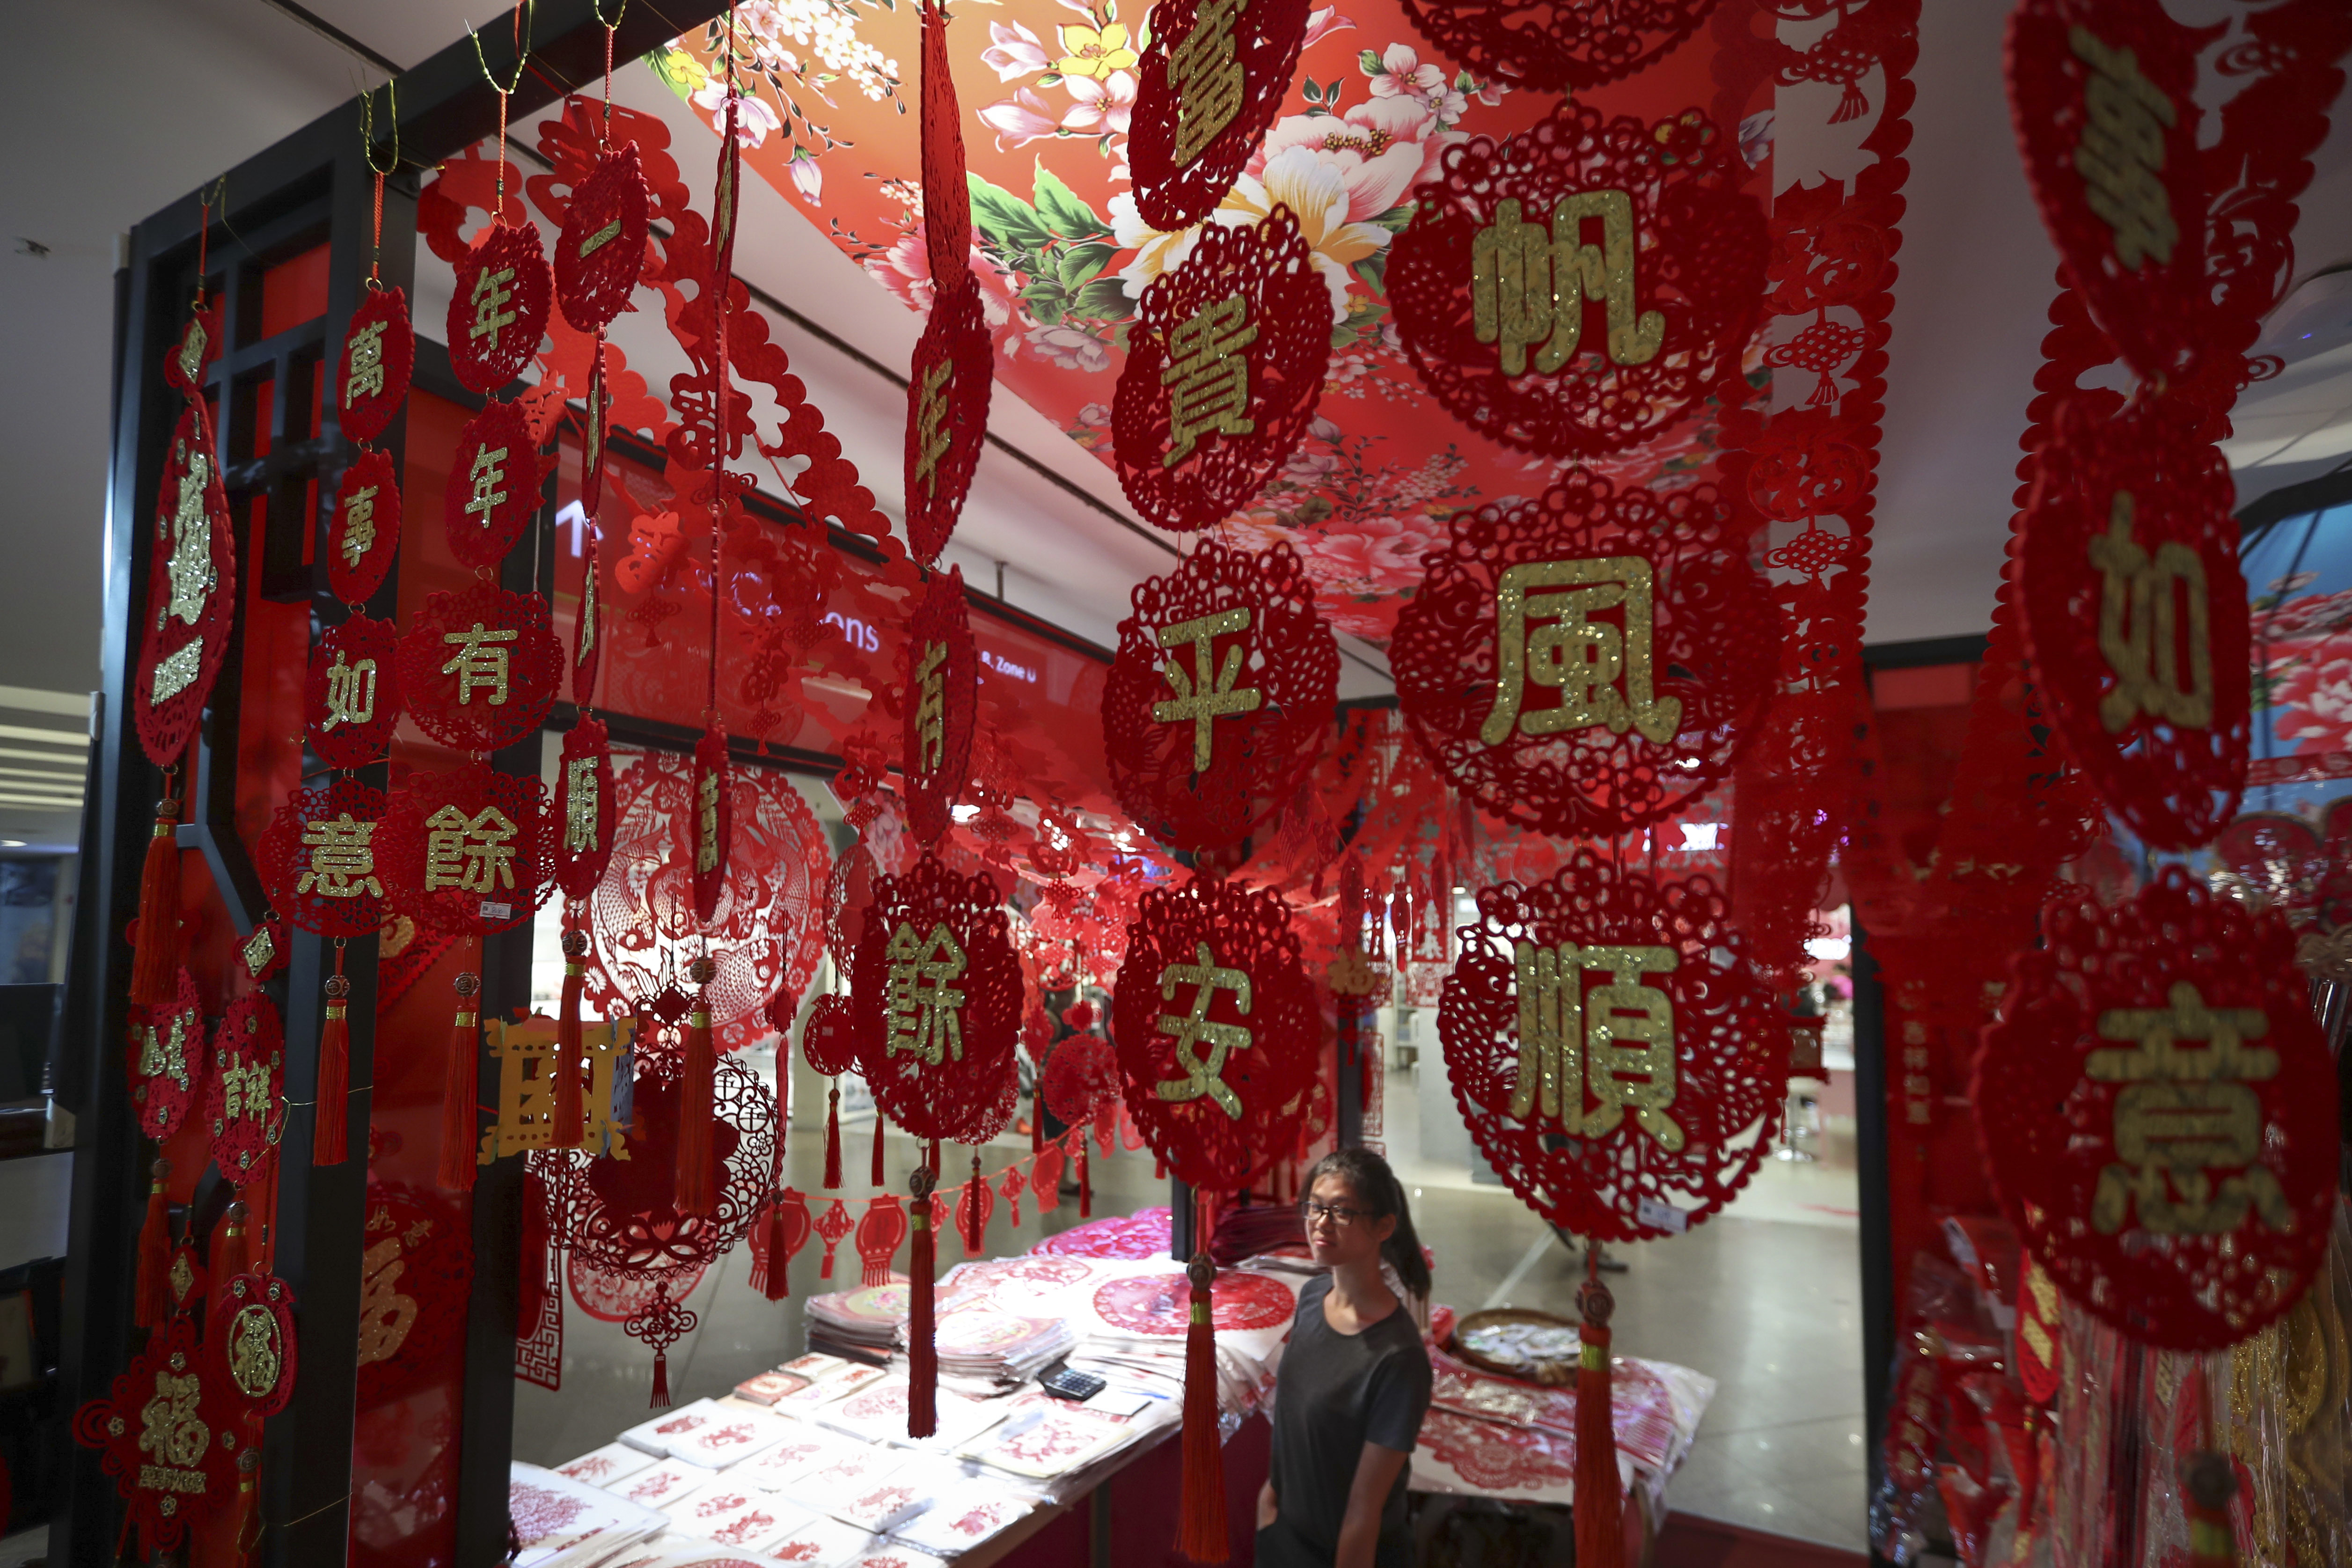 A Malaysian store displays Lunar New Year decorations at a shopping mall in Kuala Lumpur, Malaysia, Monday, Jan. 16, 2017. The Lunar New Year which falls on Jan. 28 this year marks the Year of the Rooster in the Chinese calendar. (AP Photo/Vincent Thian)